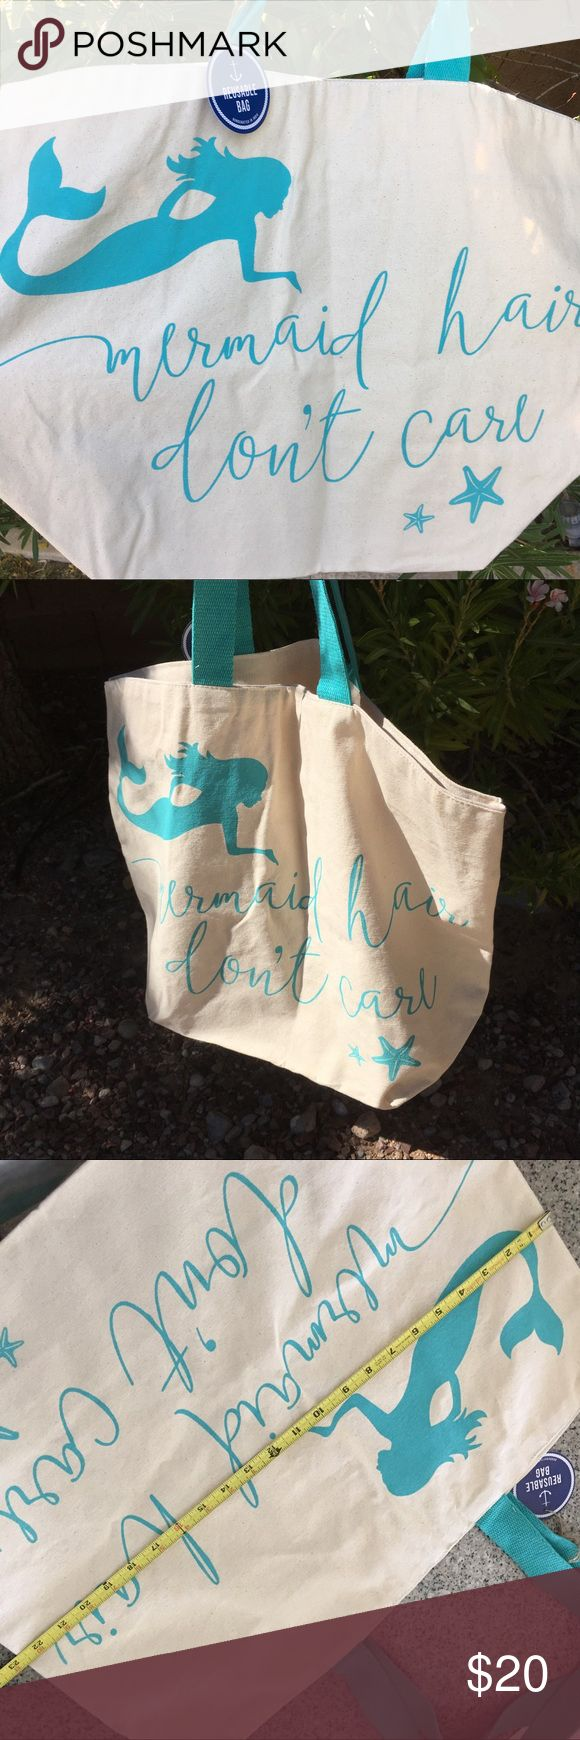 'Mermaid hair don't care' LARGE canvas tote 🐟🐟🐟 Big sturdy tote bag. Nice for beach , gym or shopping. Natural colored fabric with Turquoise handles. 🐟🐟🐟🐟🐟🐟🐟🐟🐟🐟🐟🐟🐟🐟🐟🐟 Bags Totes